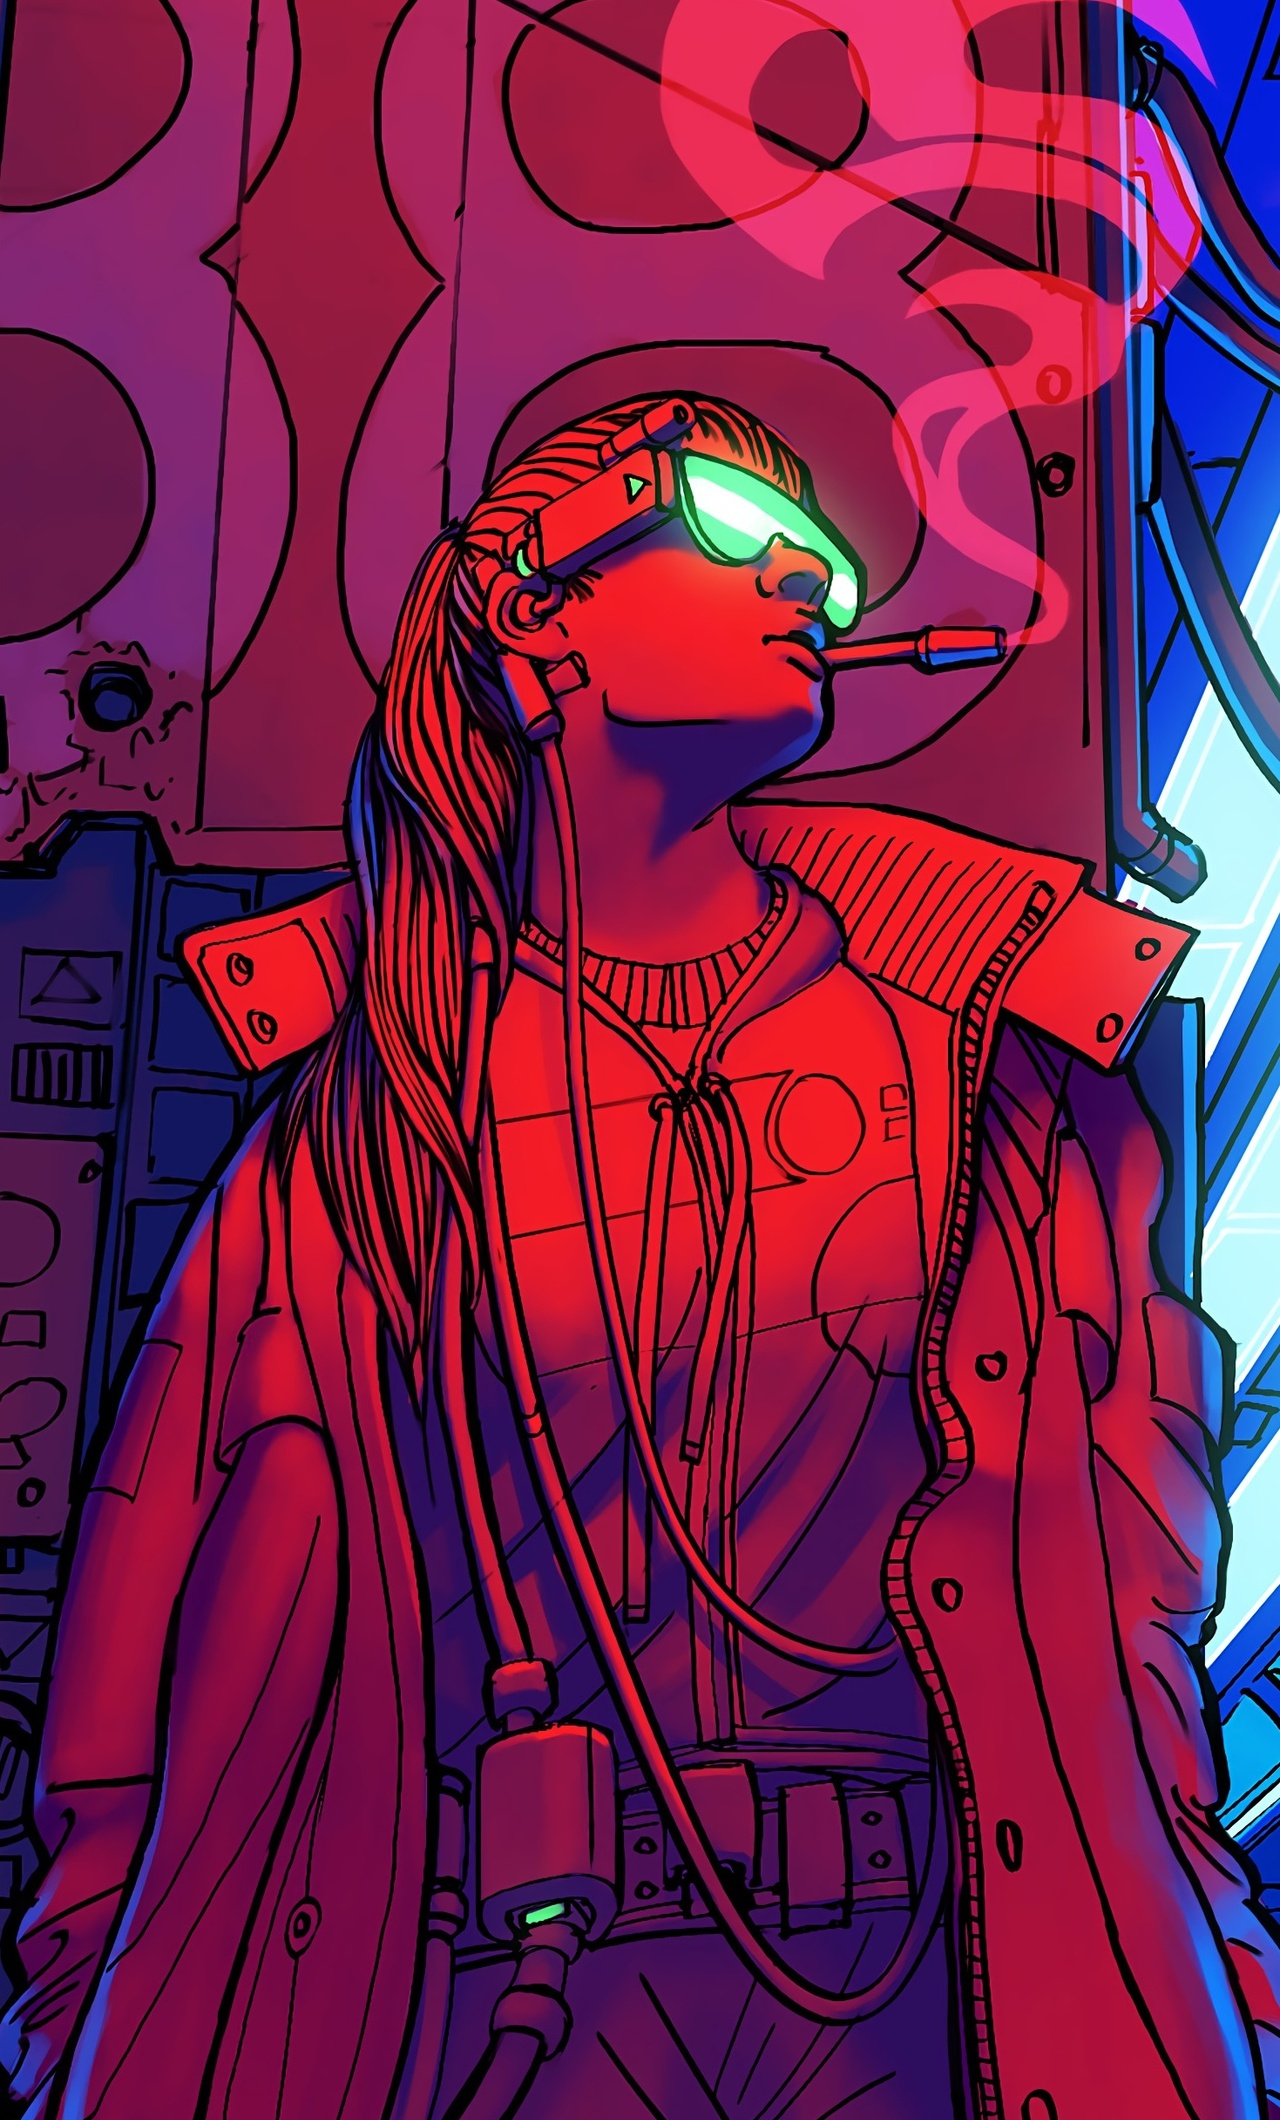 1280x2120 Cyberpunk Smoking Girl 4k Iphone 6 Hd 4k Wallpapers Images Backgrounds Photos And Pictures